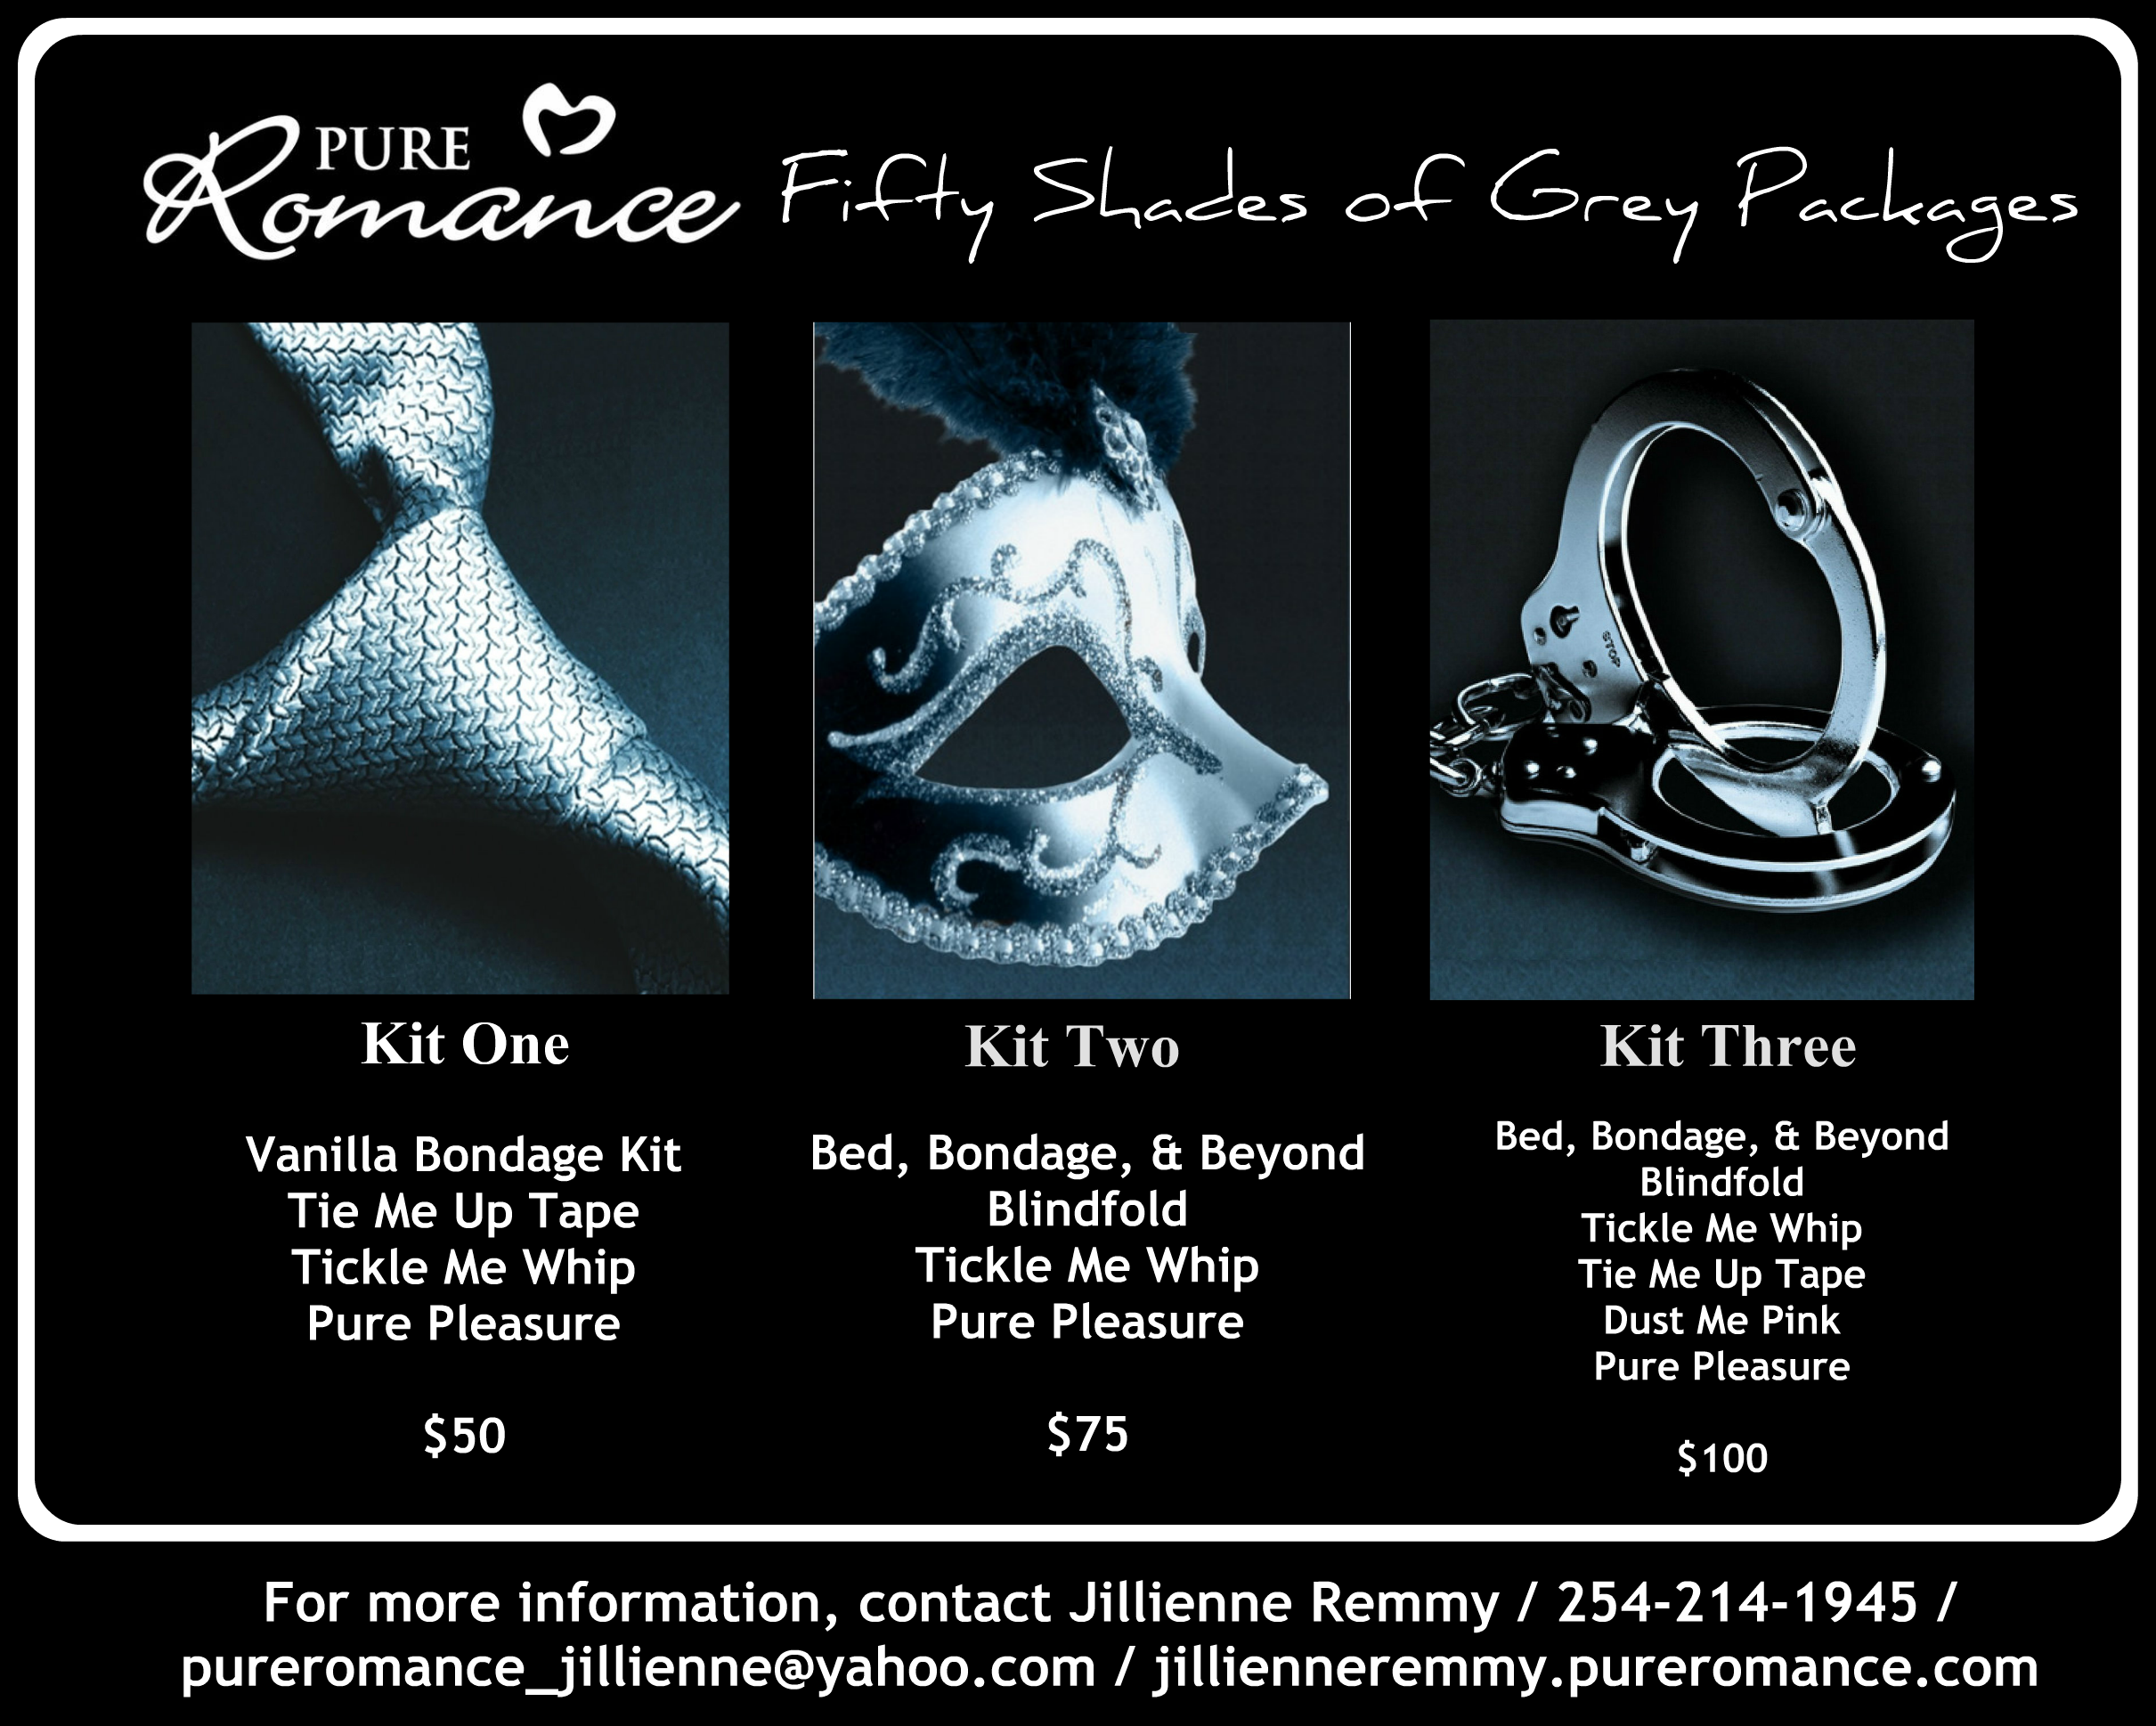 special fifty shades of grey pure r ce kits you could get 3 special fifty shades of grey pure r ce kits you could get one of these kits for simply by hosting a pure r ce party